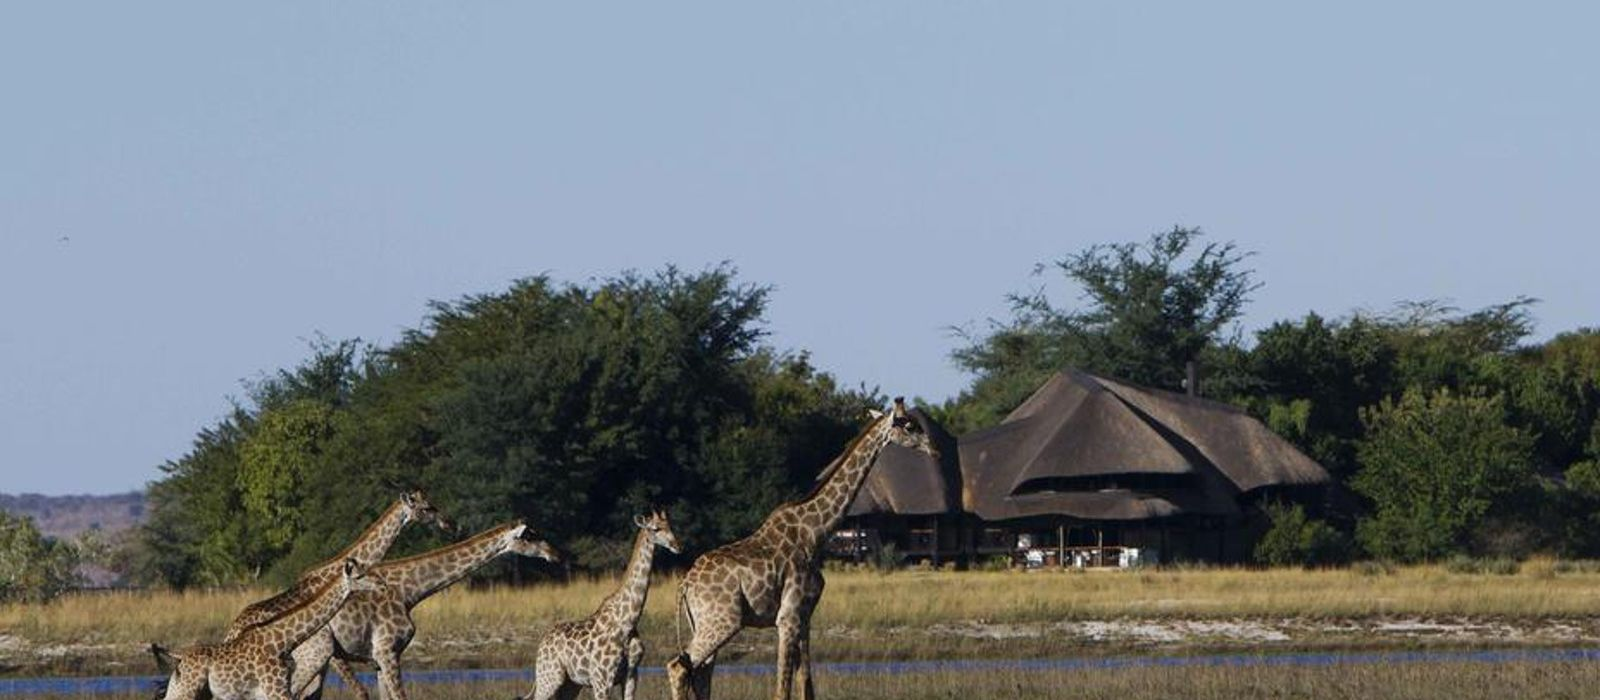 Hotel Chobe Savanna Lodge Botswana